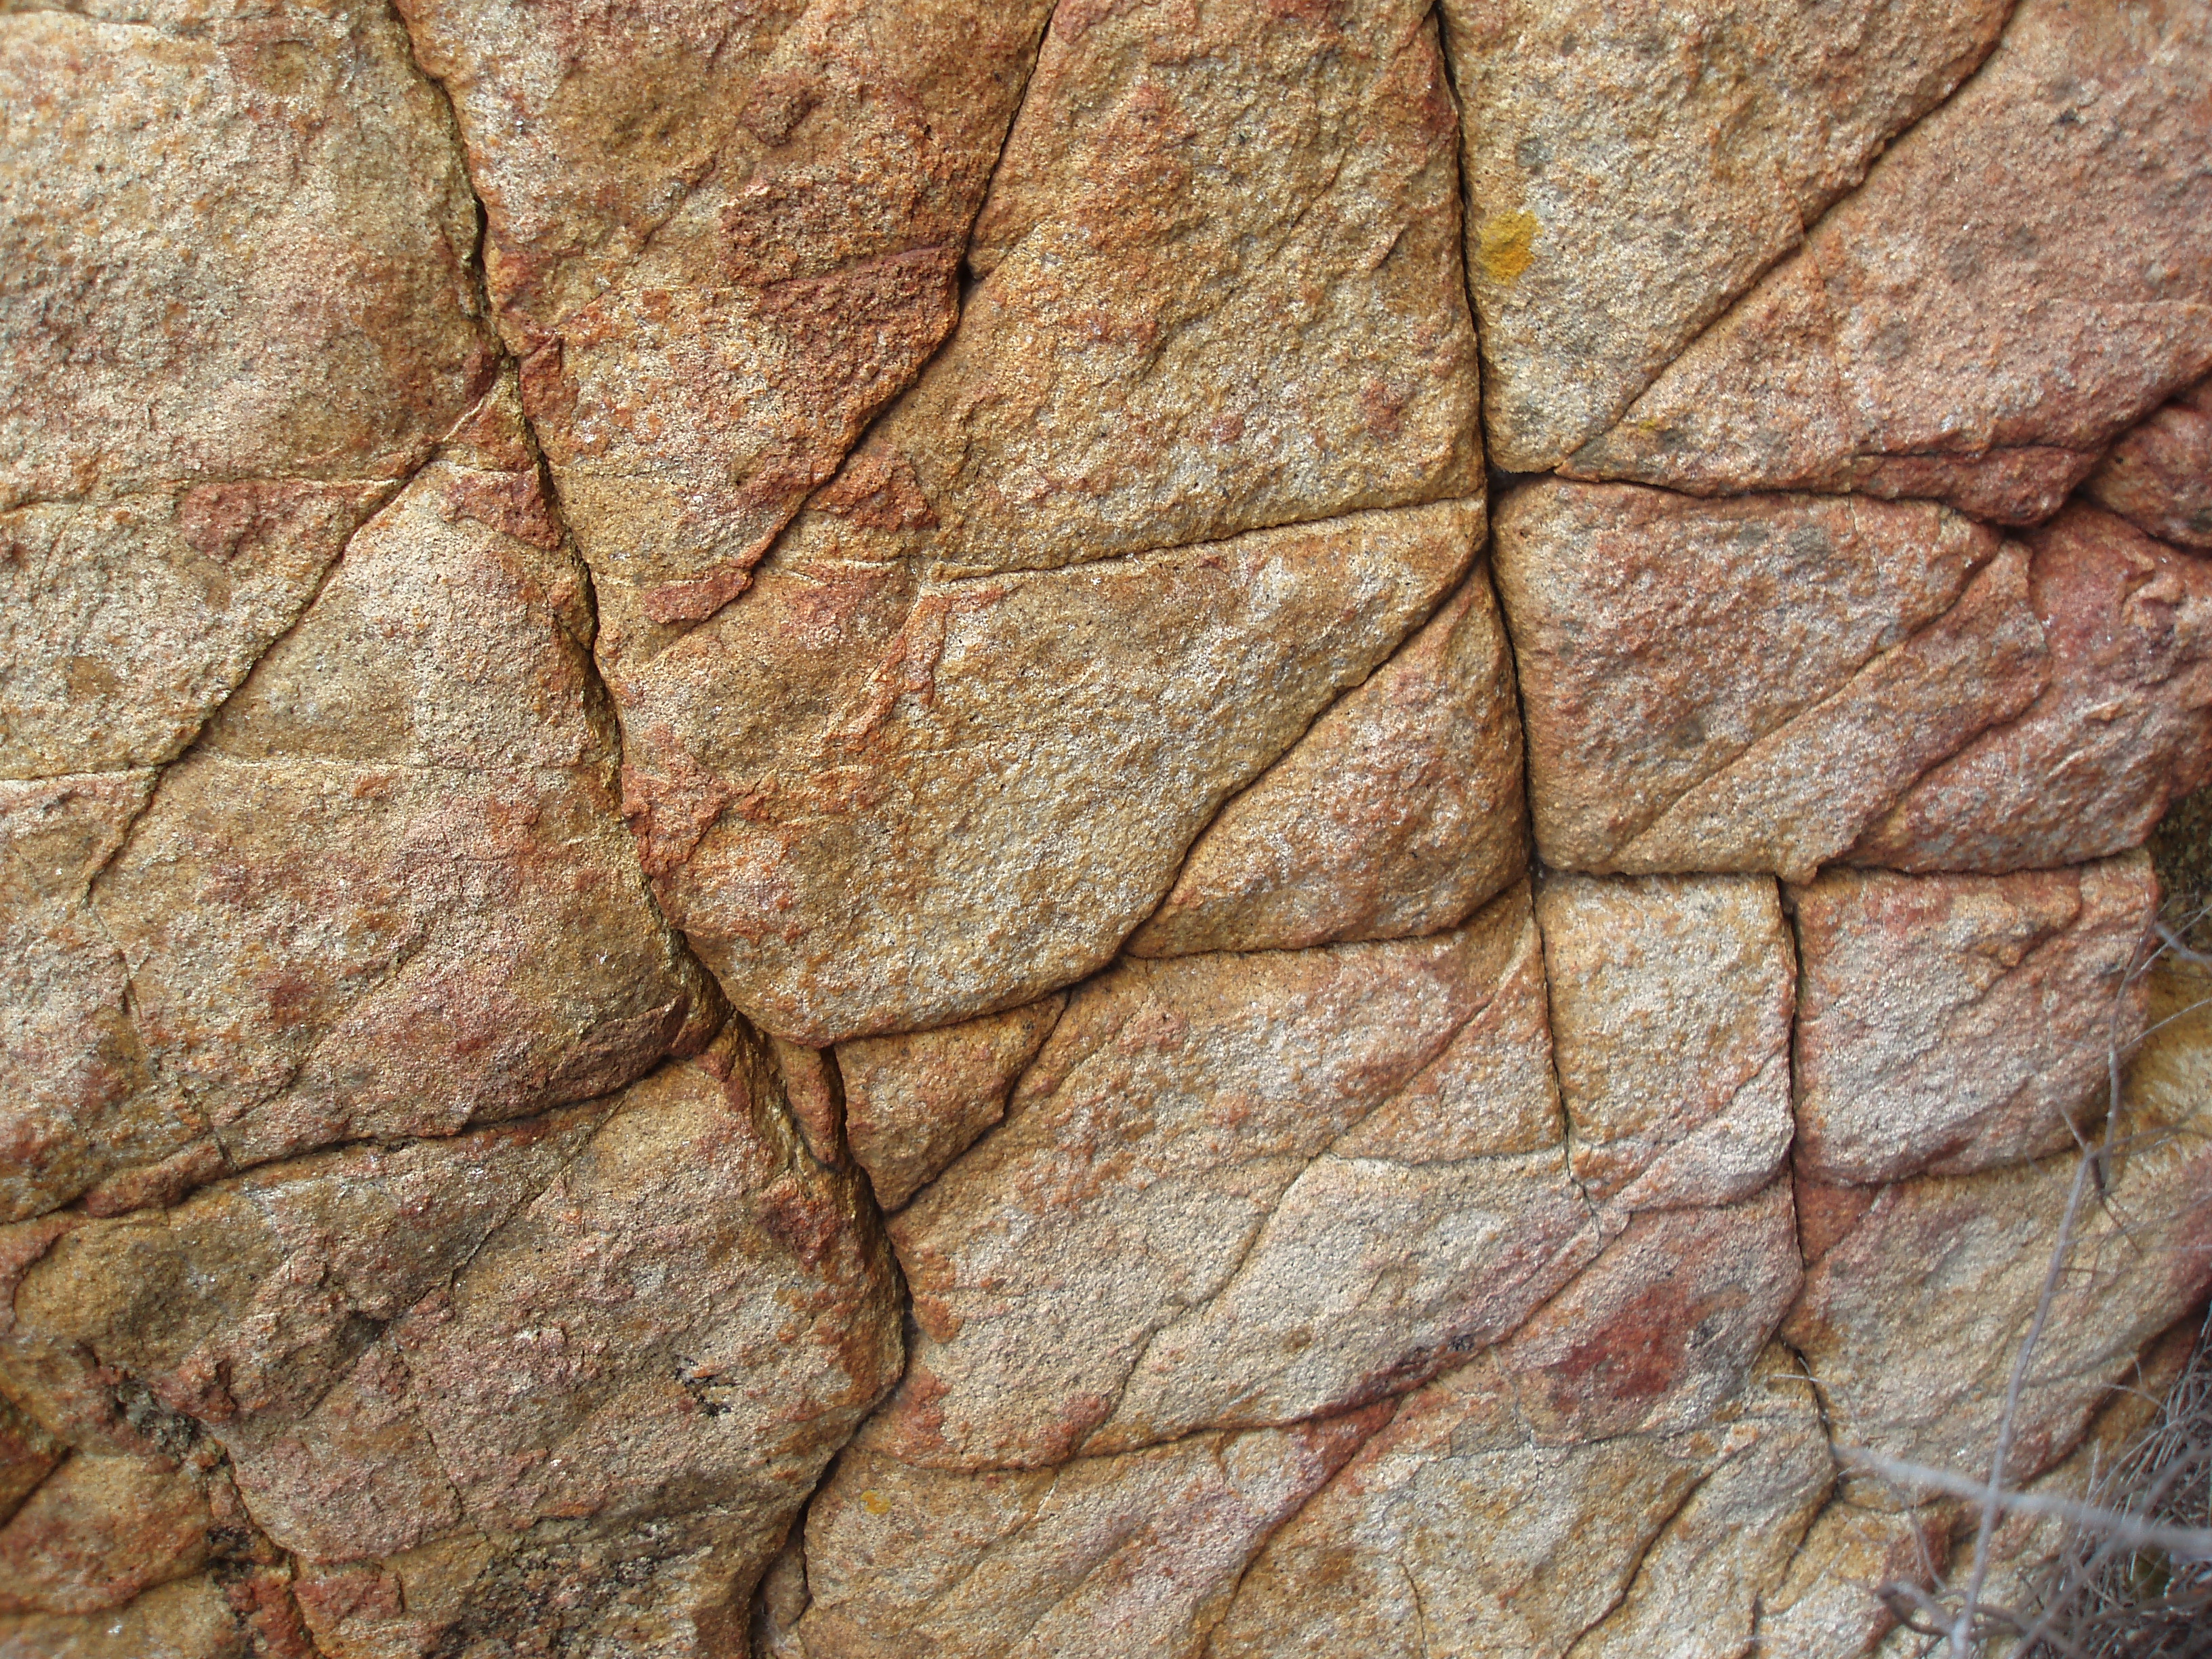 Cracked Sandstone Rock Free Backgrounds And Textures